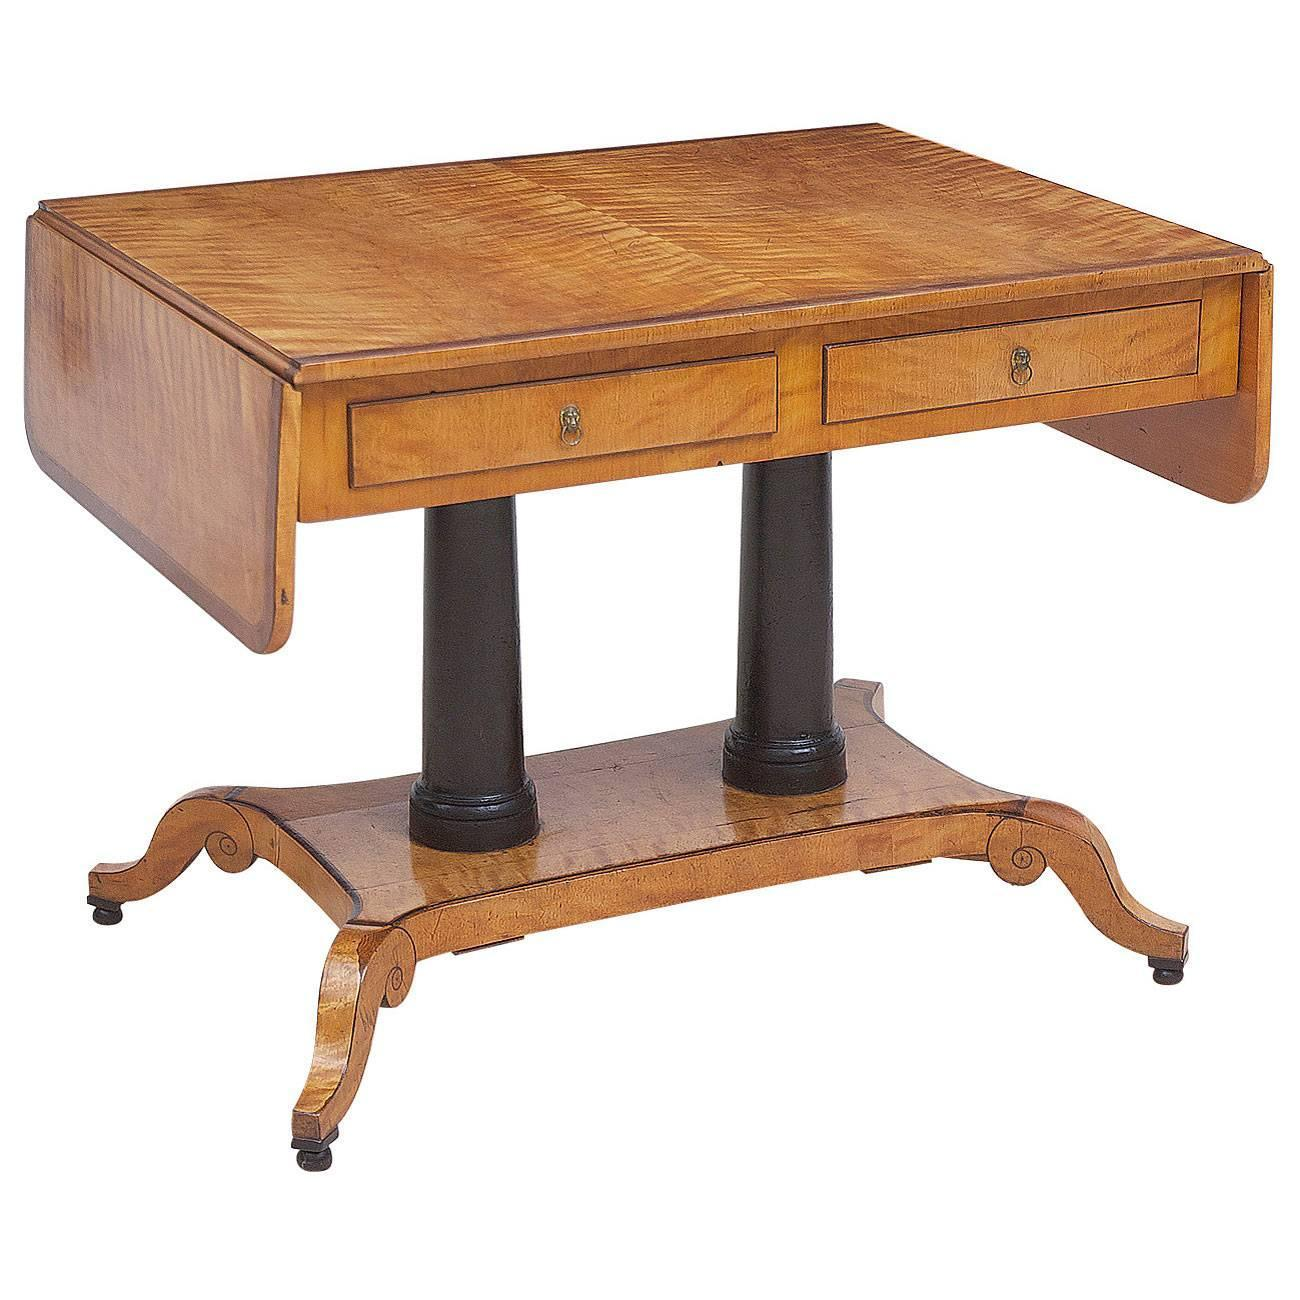 Birch Writing Table From The Estate Of Swedish Architect Alfred Grenander  For Sale At 1stdibs